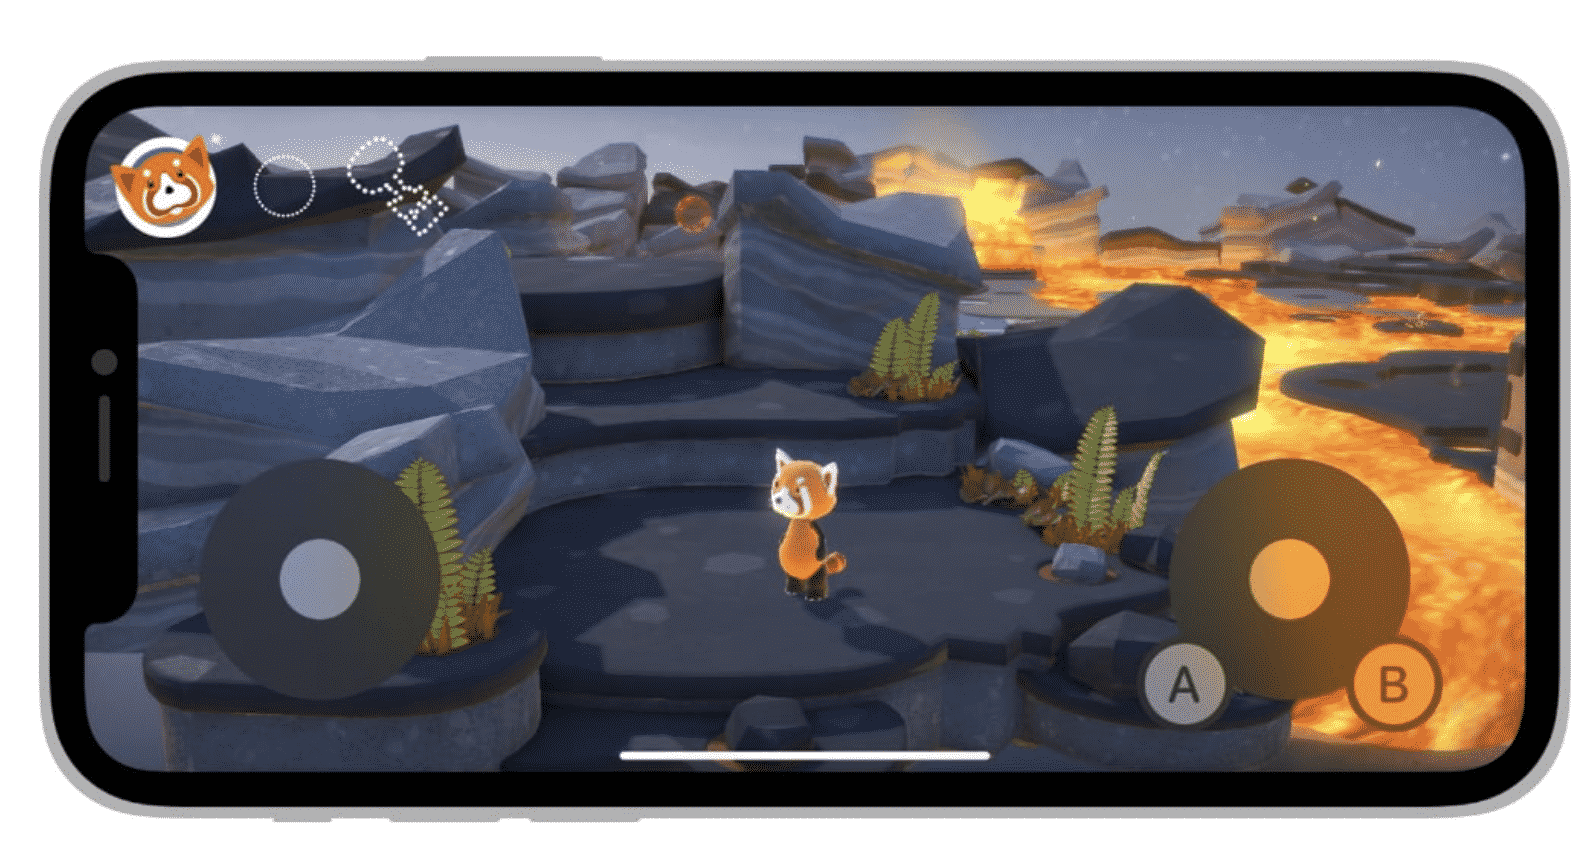 On-Screen game controller unlocked for developers on iPadOS 15 and iOS 15